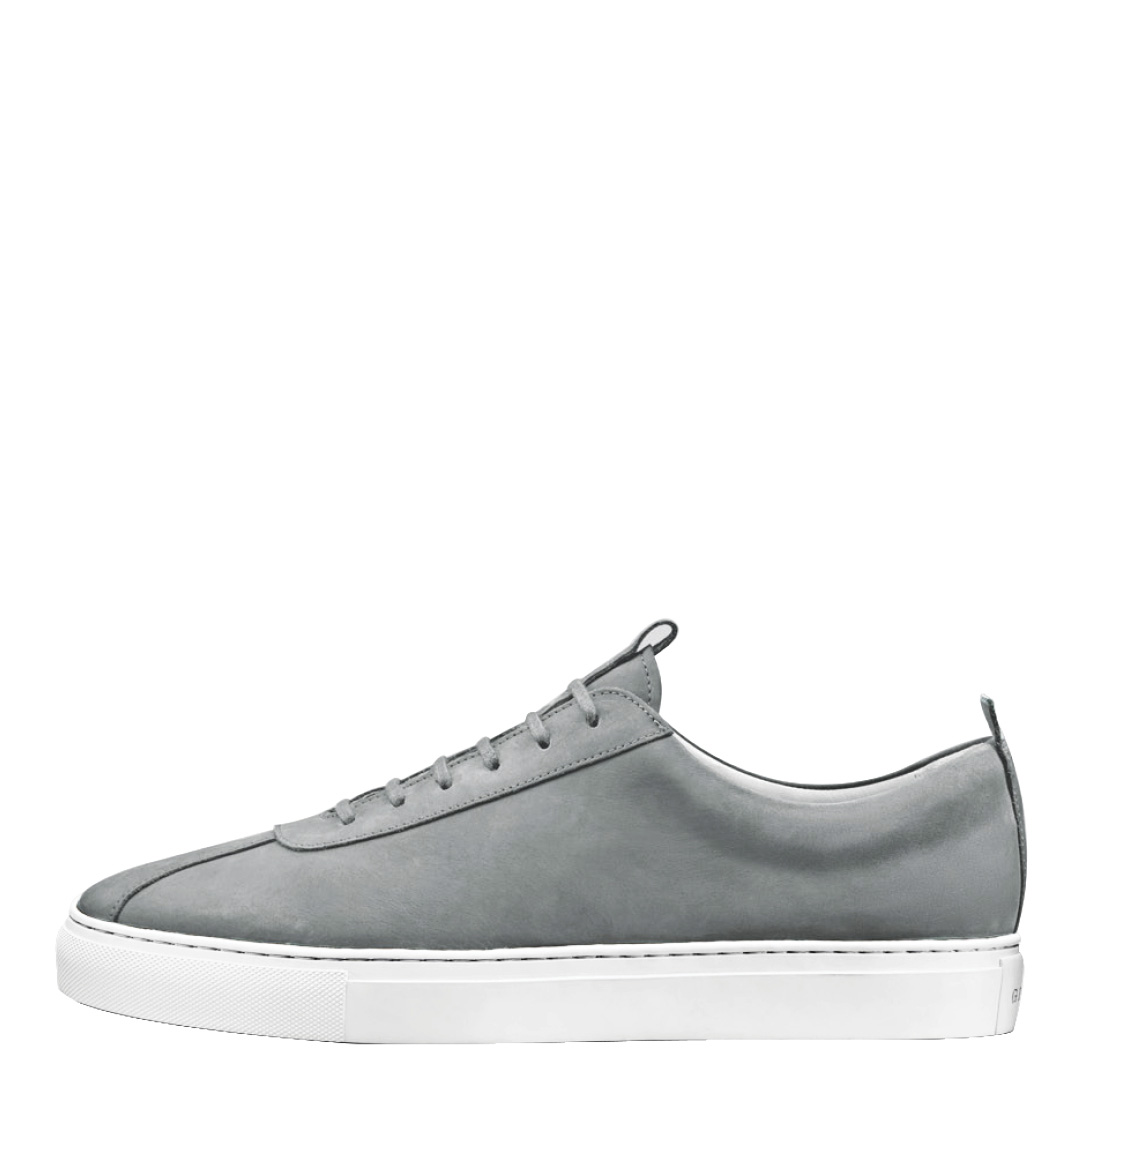 Grenson Light Grey Suede Oxford Sneaker